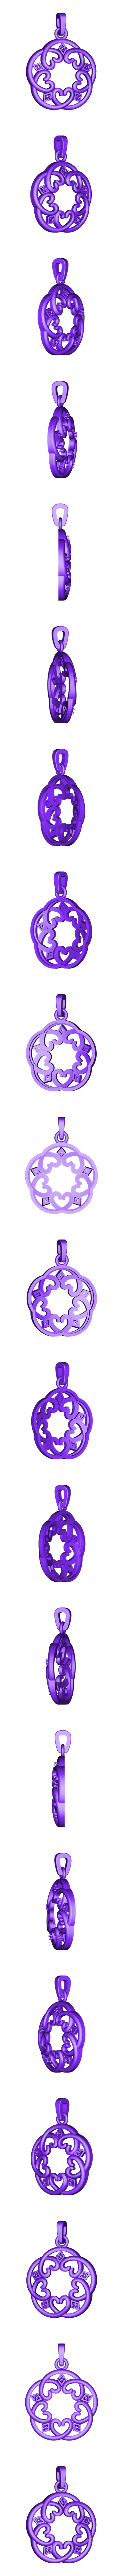 PD25151.stl Download STL file Jewelry 3D CAD Model For Heart Design Pendant • Design to 3D print, VR3D